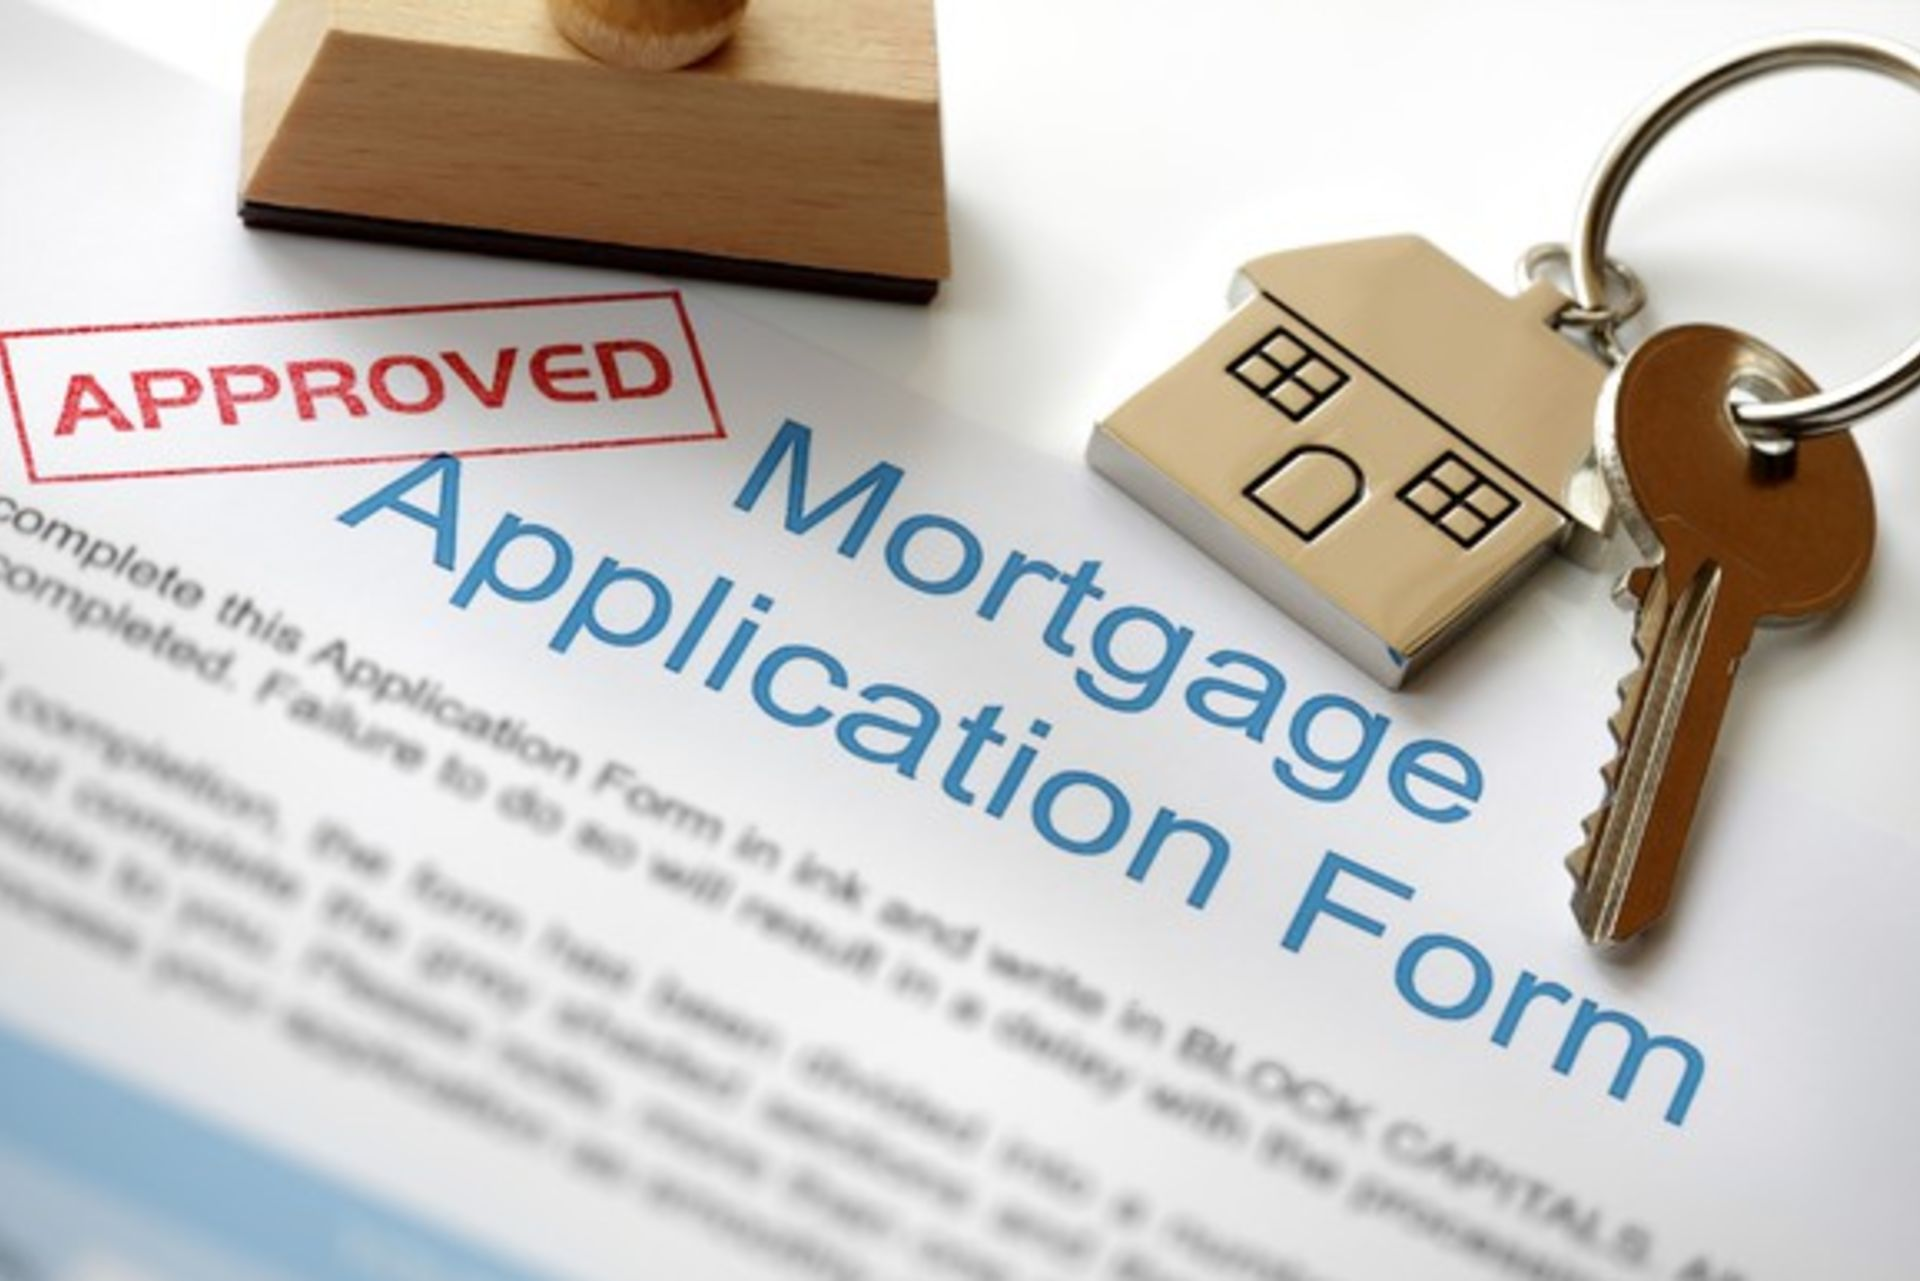 A Sign Buyer Confidence Is Shifting: Mortgage Applications Rise